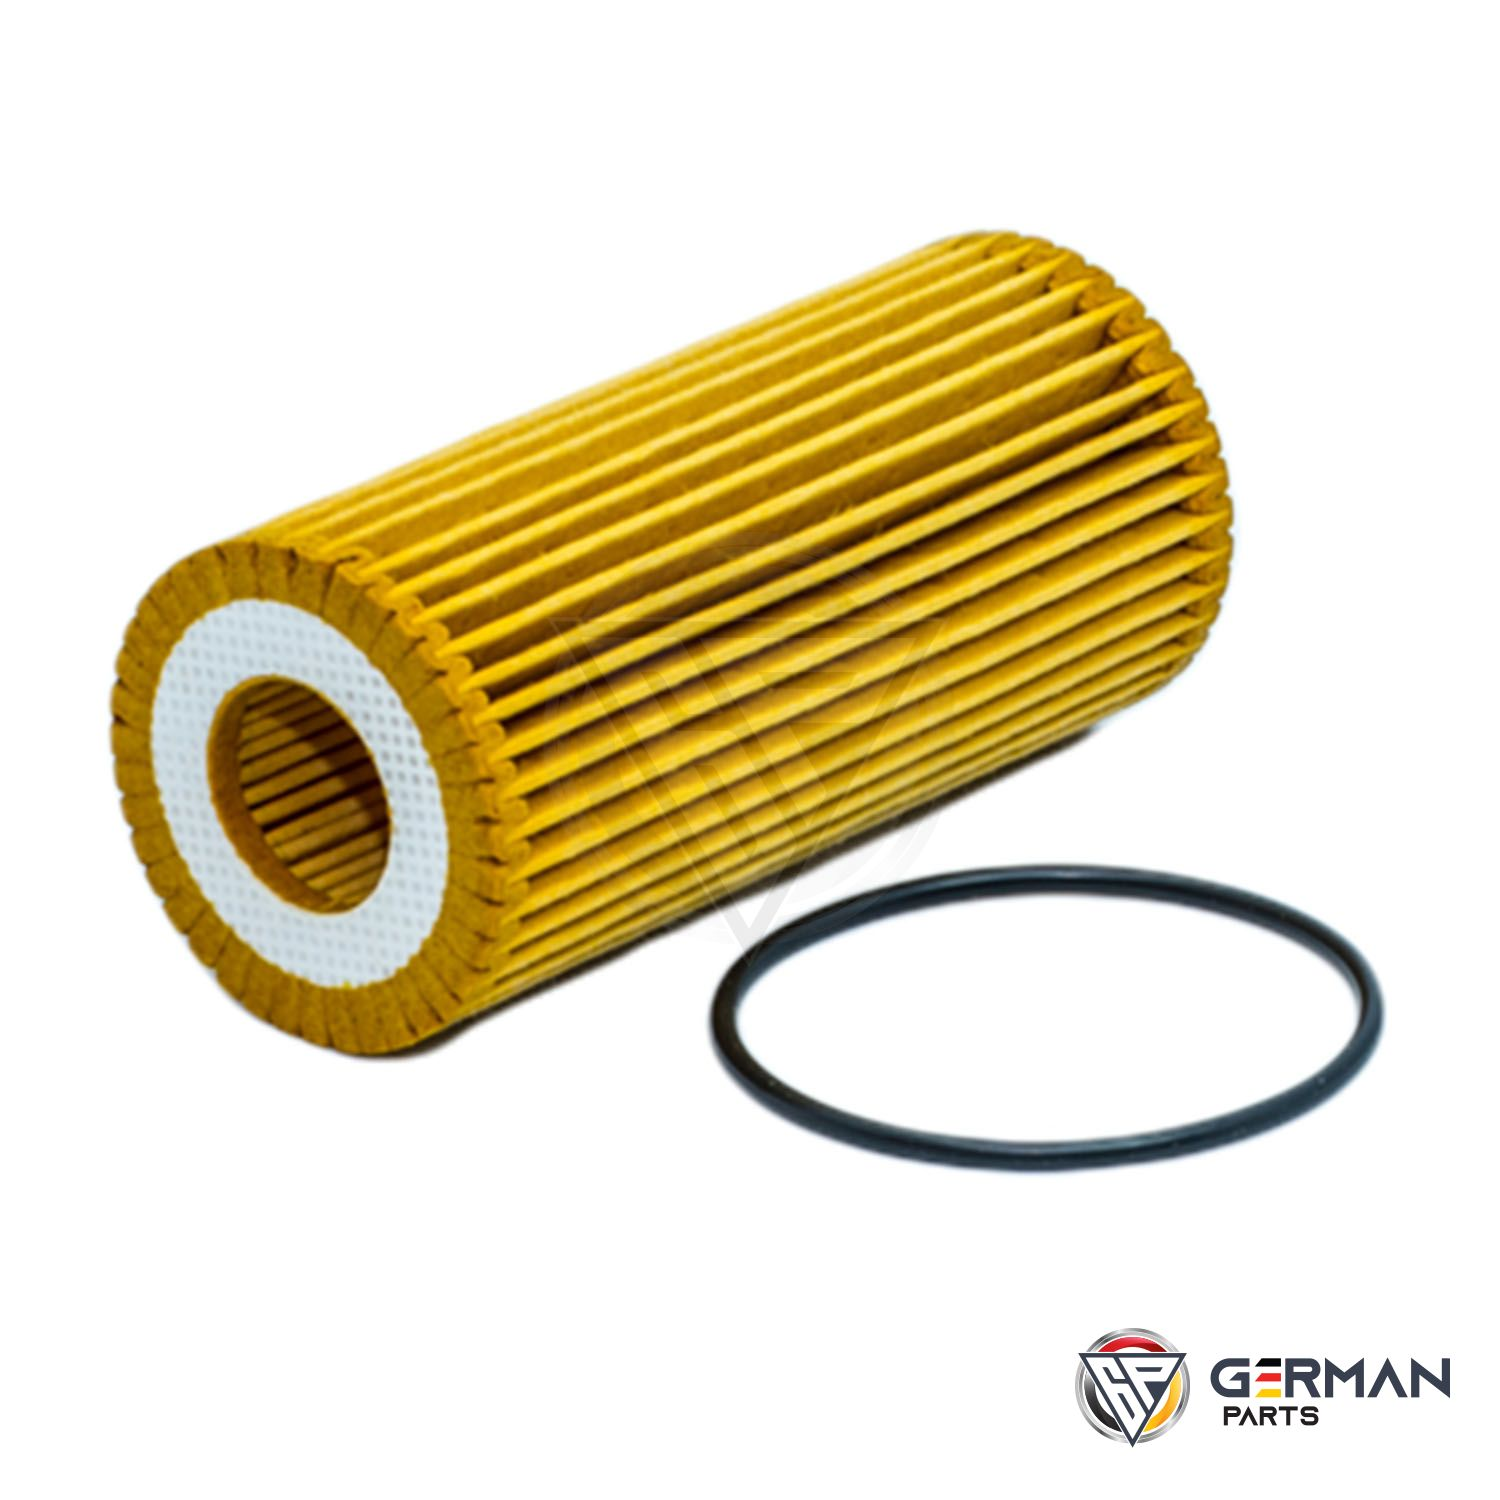 Buy Vaico Oil Filter 06L115562 - German Parts